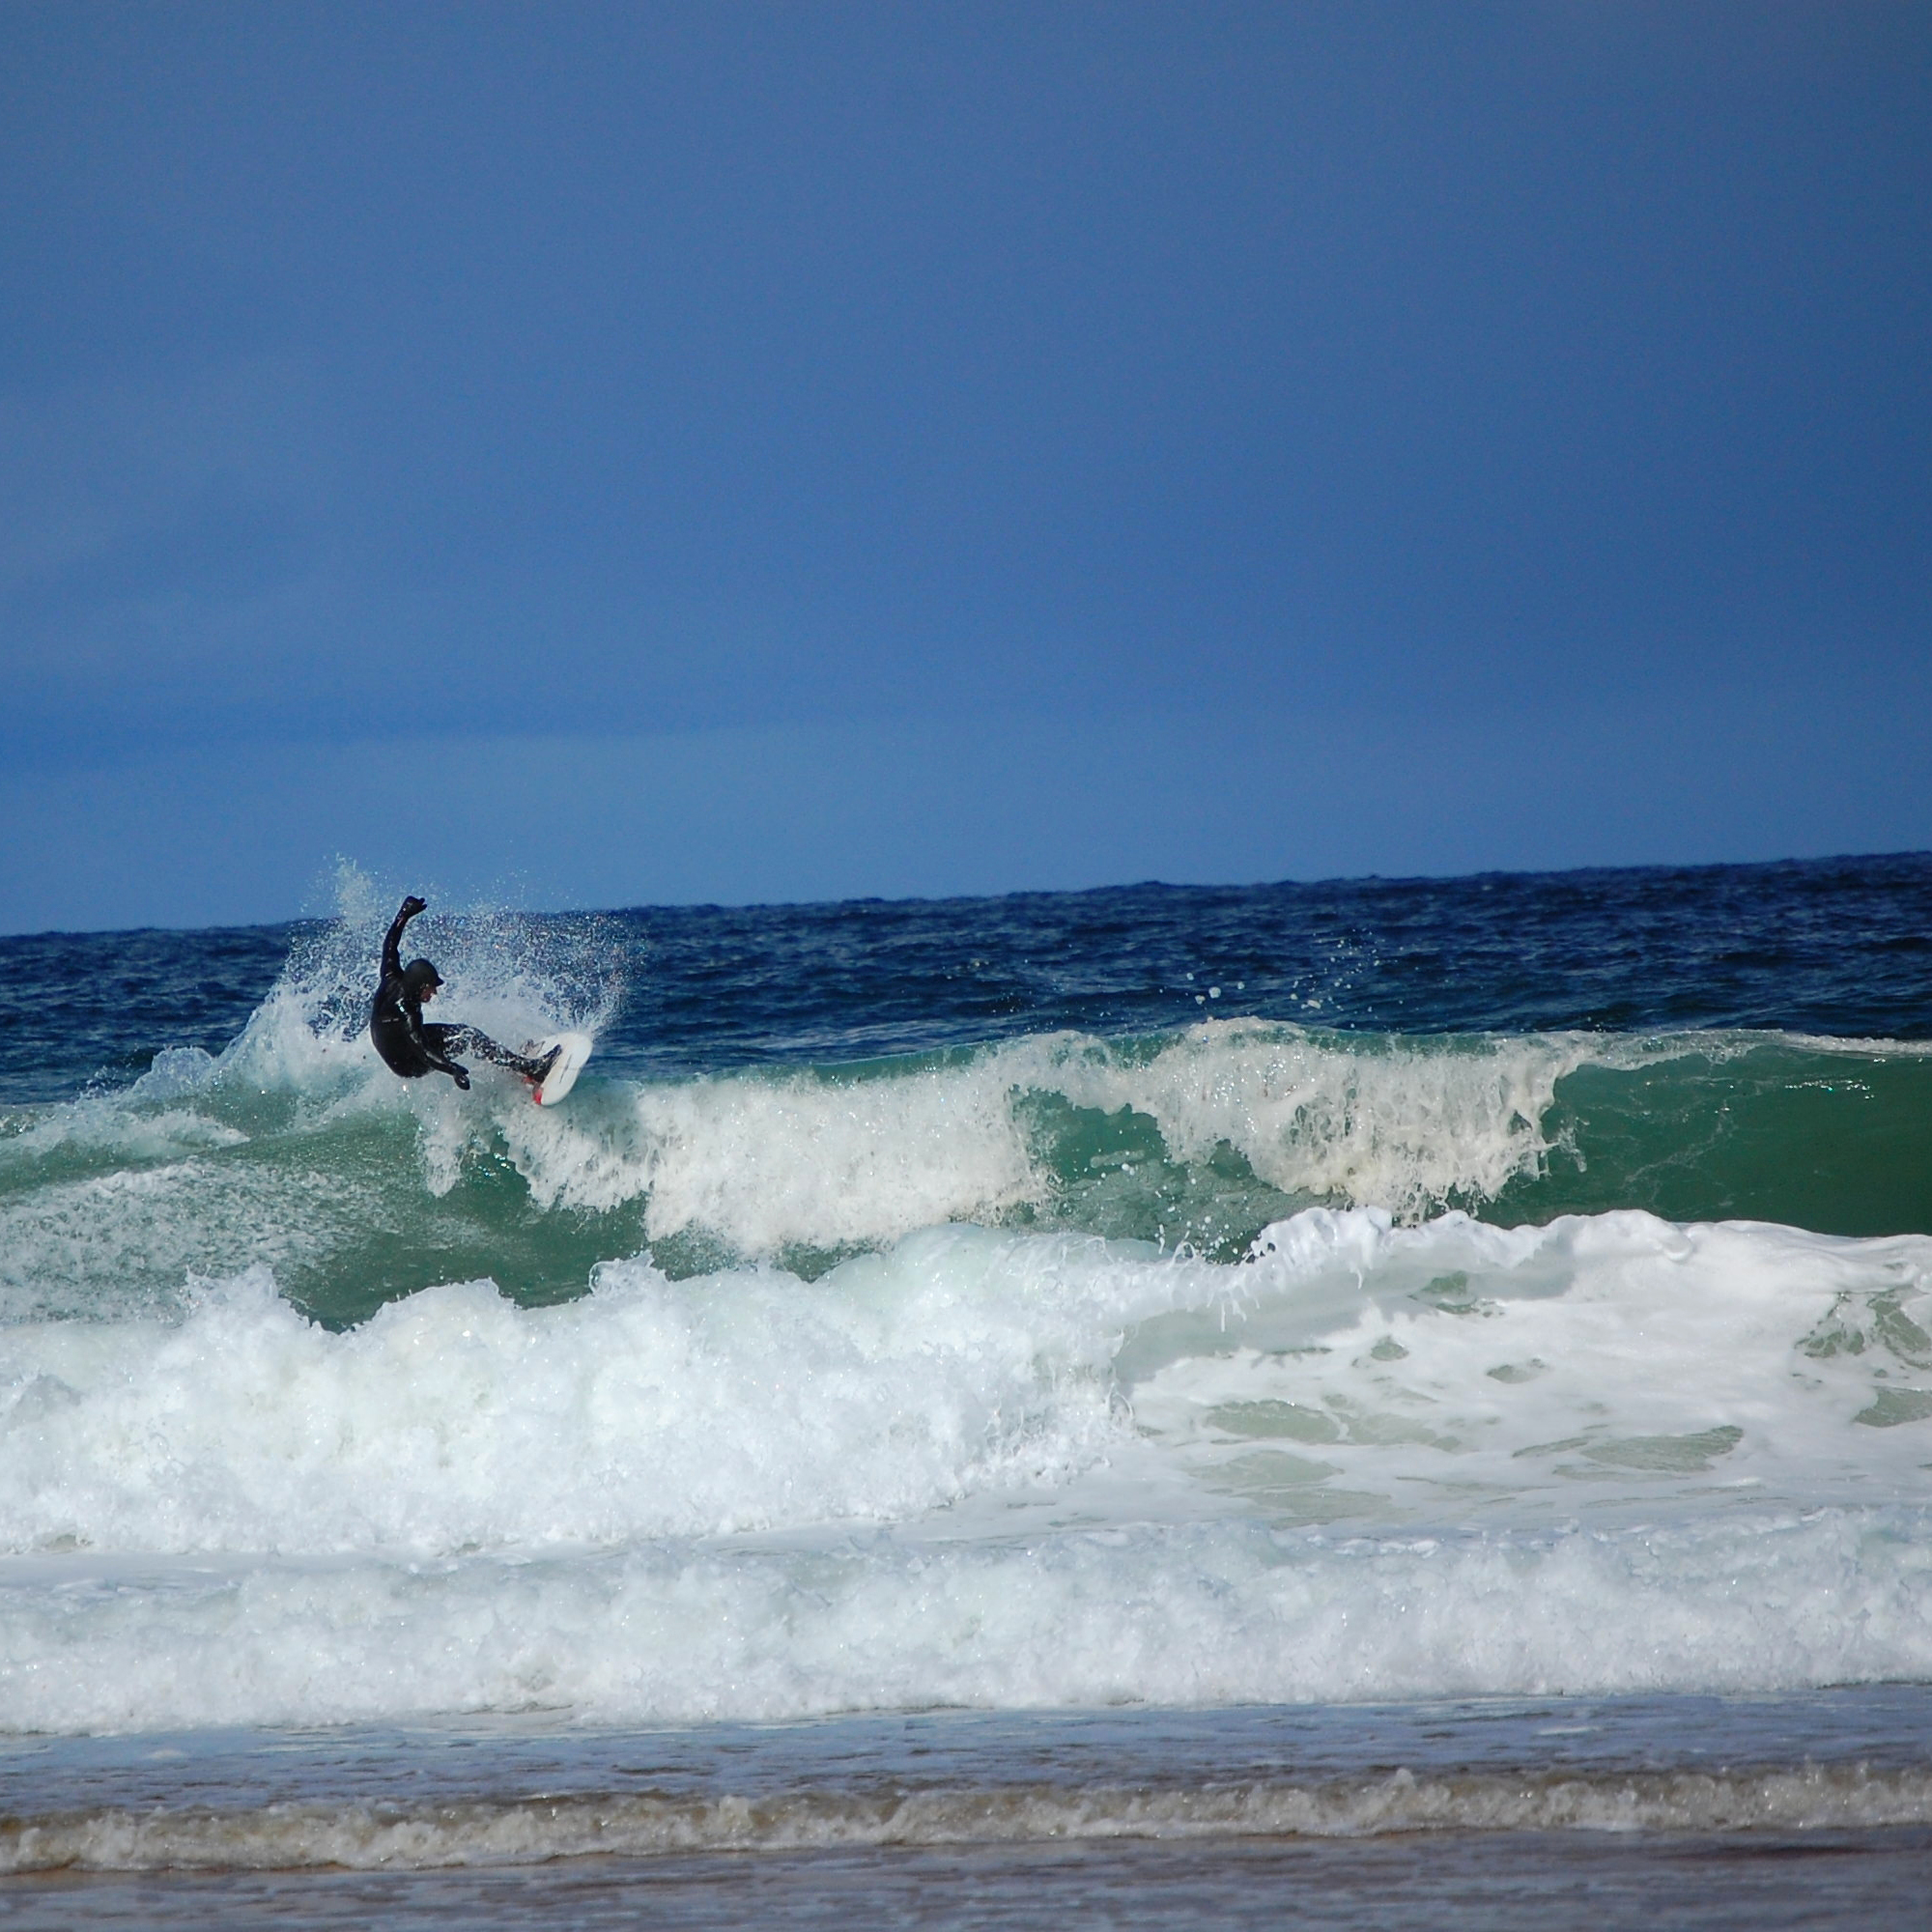 A surfer in big waves